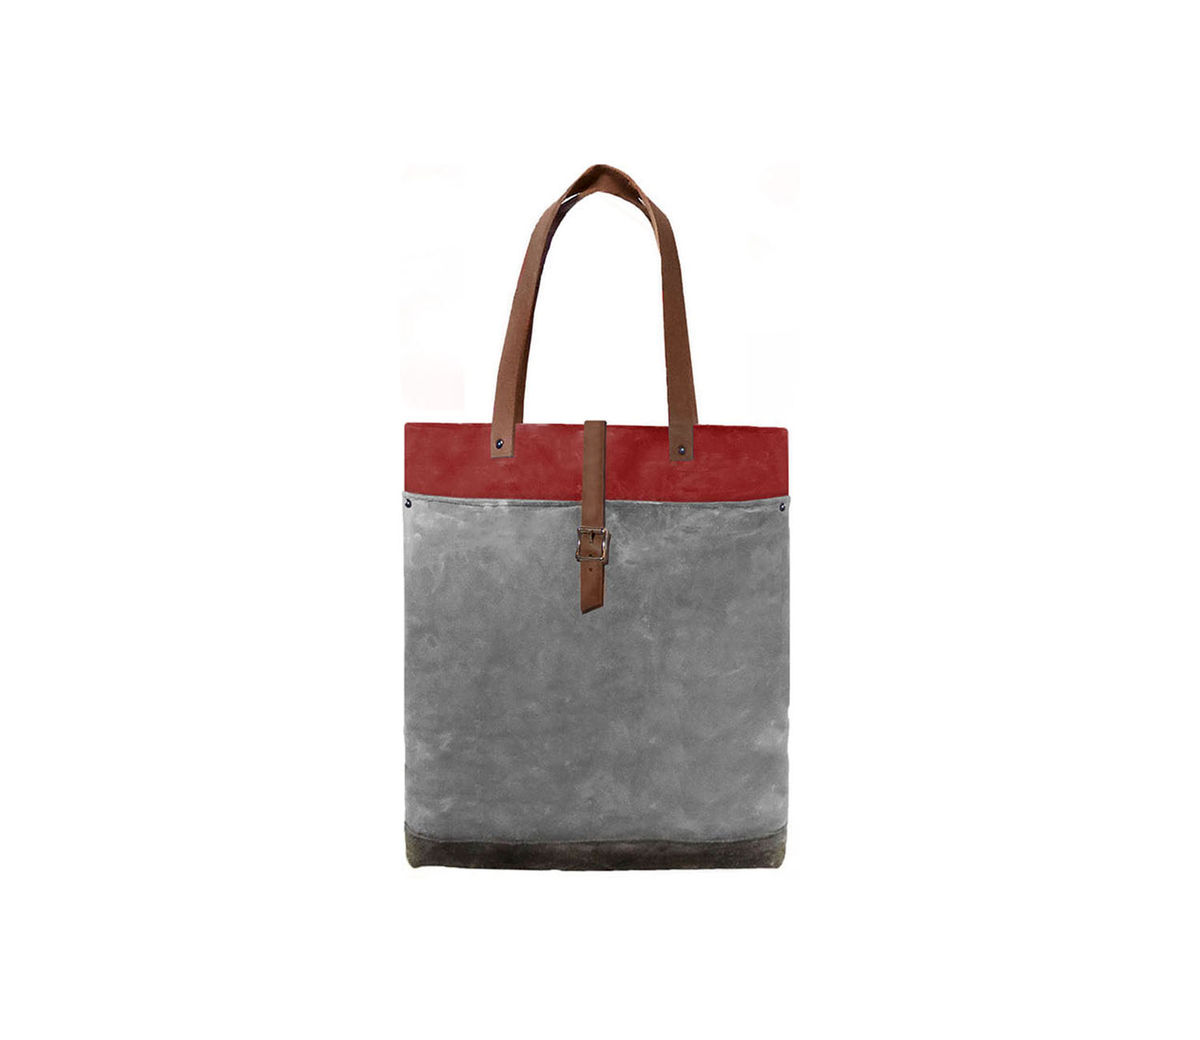 Classic Tote Waxed Canvas w/ Leather Straps in Blood Root - product images  of